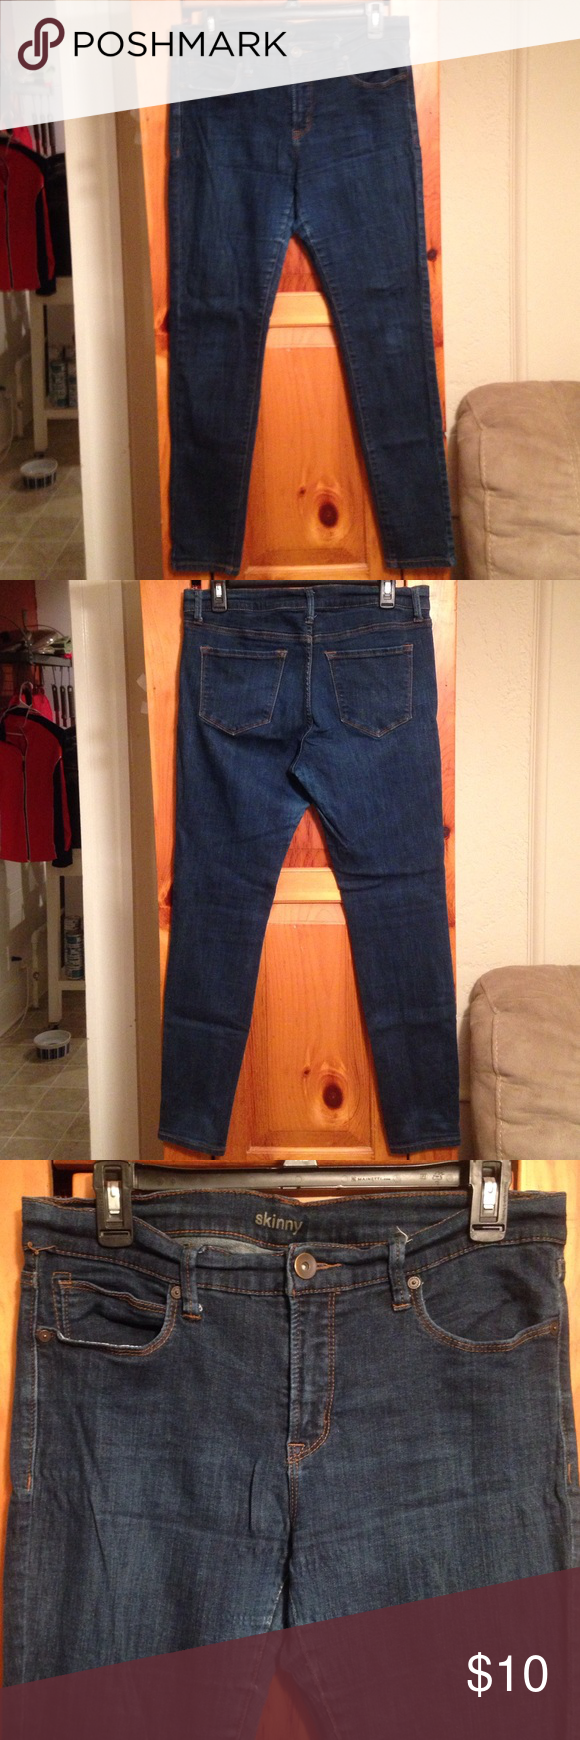 """CLEARANCE! JCP SKINNY JEANS Women's 14/31 Excellent condition cotton blend skinny blue jeans by JC PENNEY. Size women's 14. Inseam: 28.5"""". Rise: 9.25"""". Waist: 17"""" across lying flat. Material: 99% cotton, 1% spandex. Has some wear in crotch. See pics. jcpenney Jeans Skinny"""